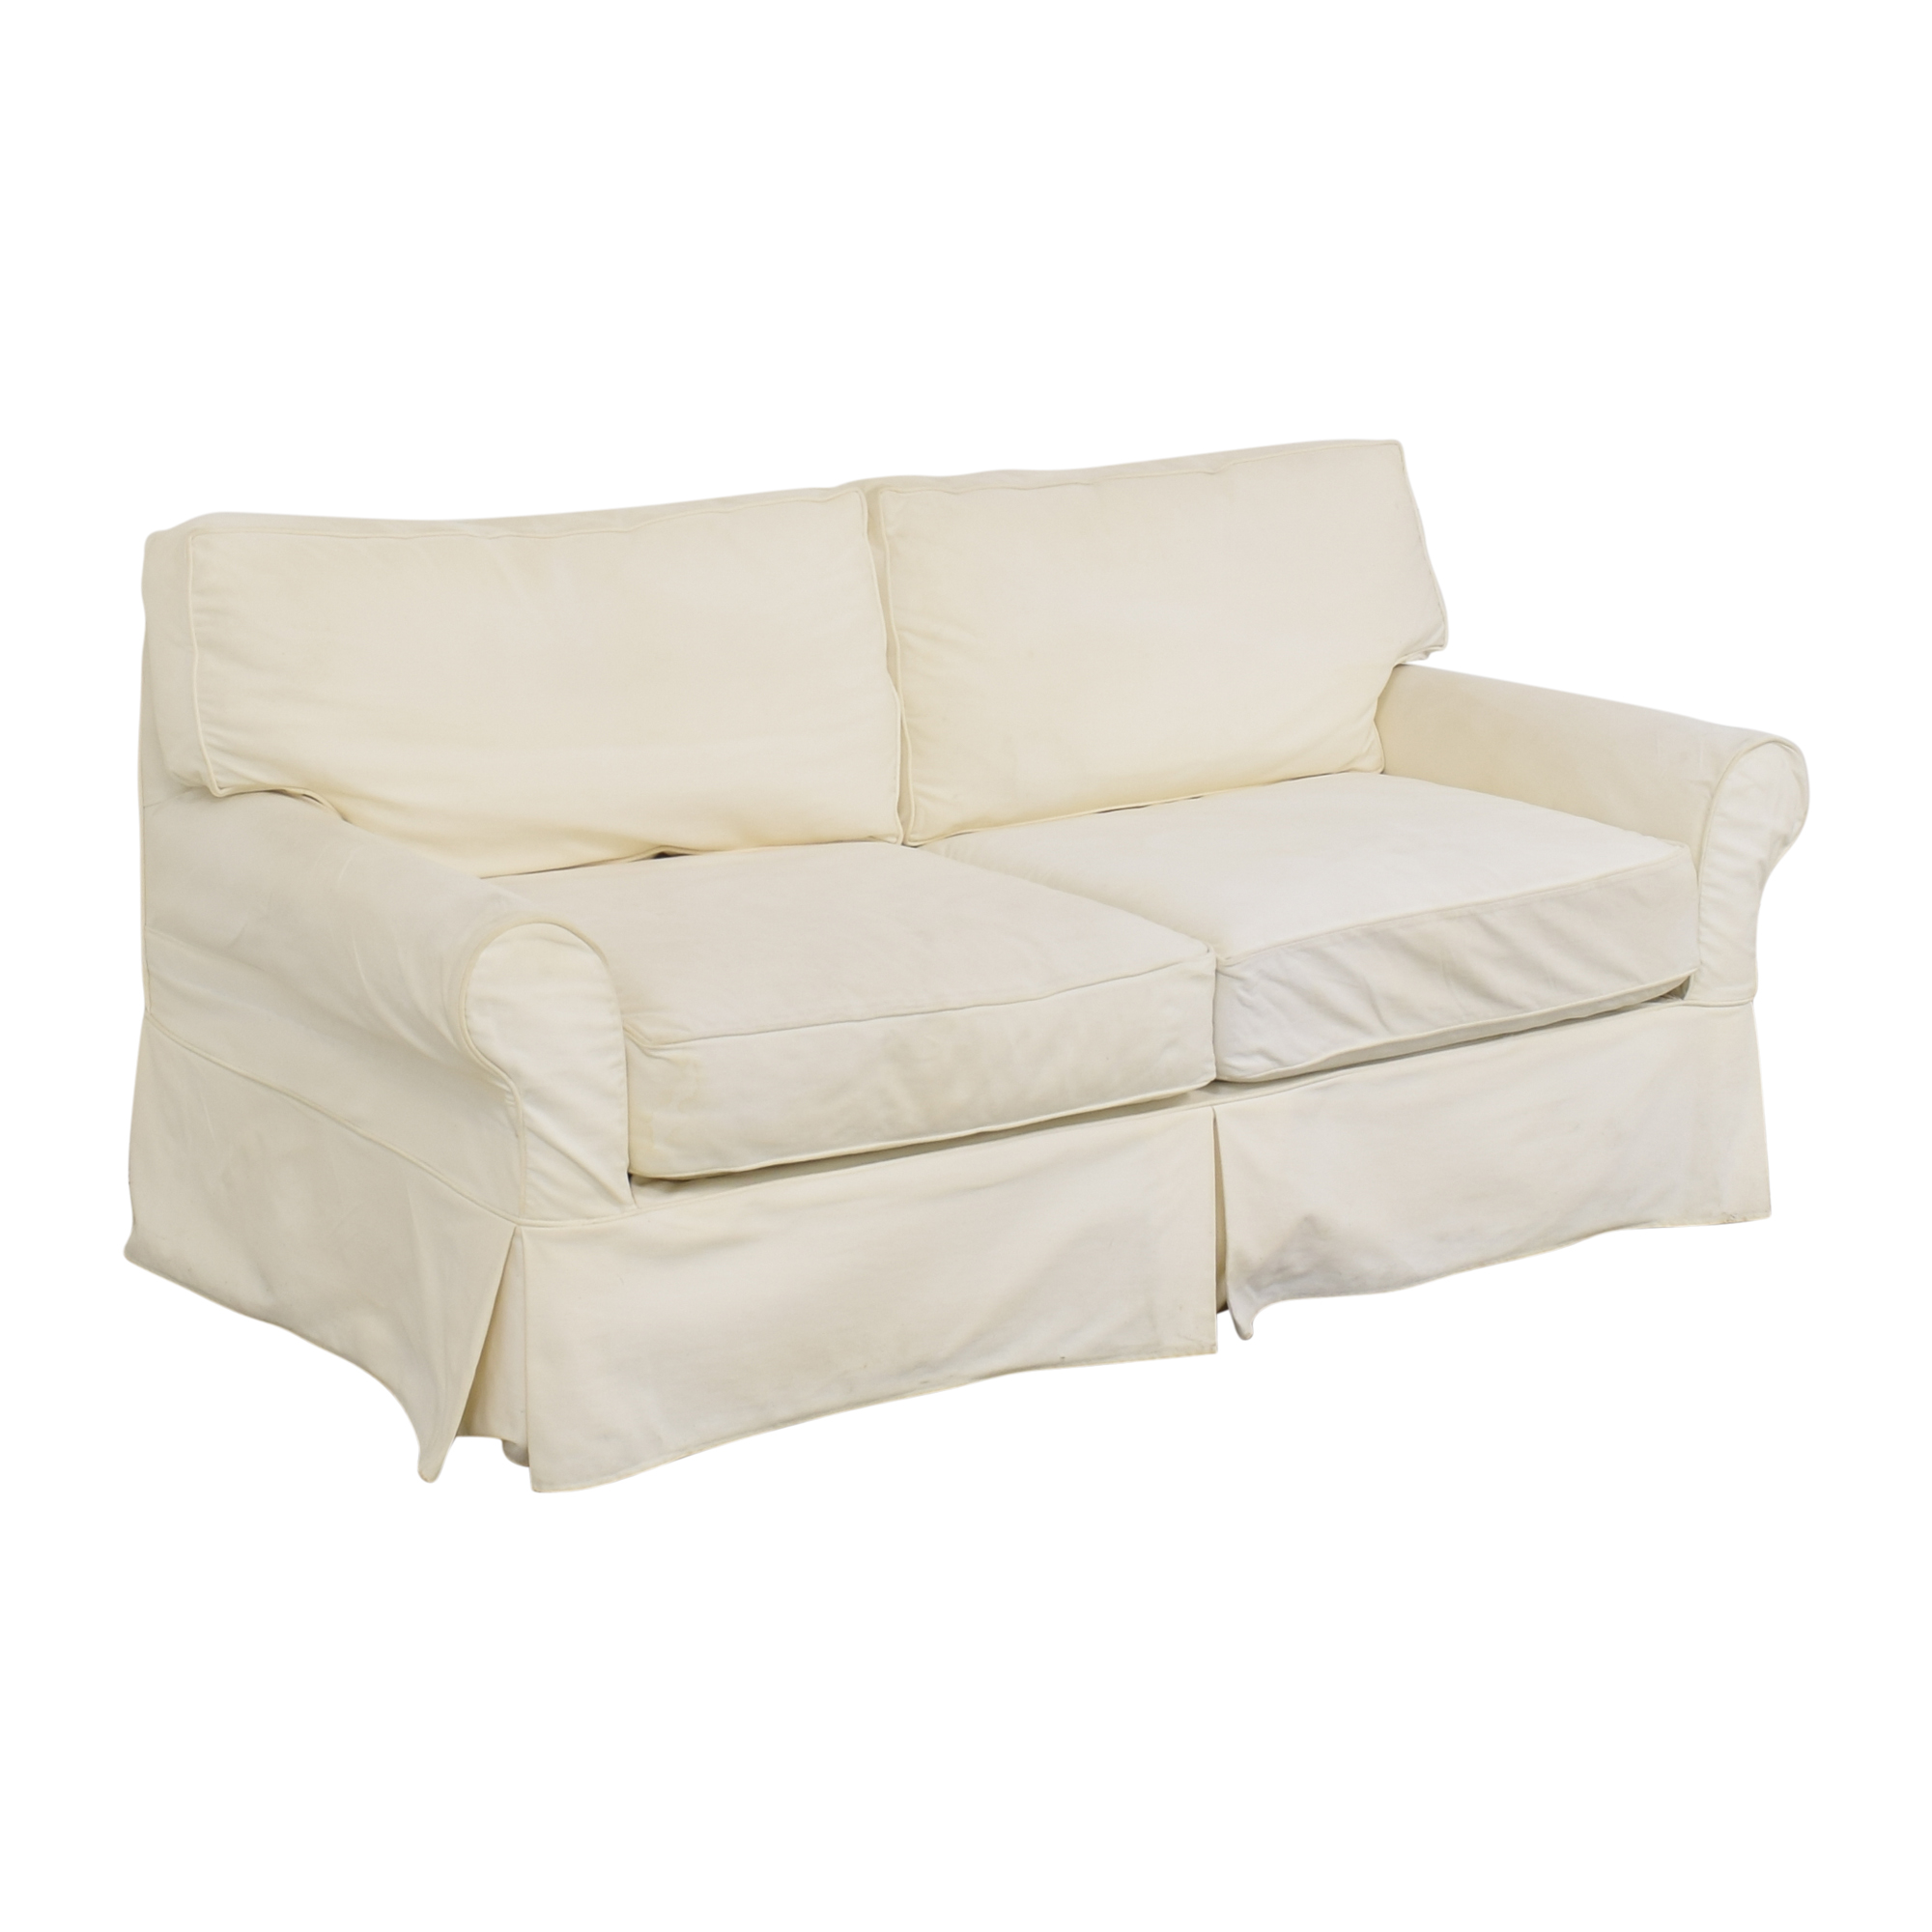 buy Crate & Barrel Bayside Apartment Sofa Crate & Barrel Classic Sofas